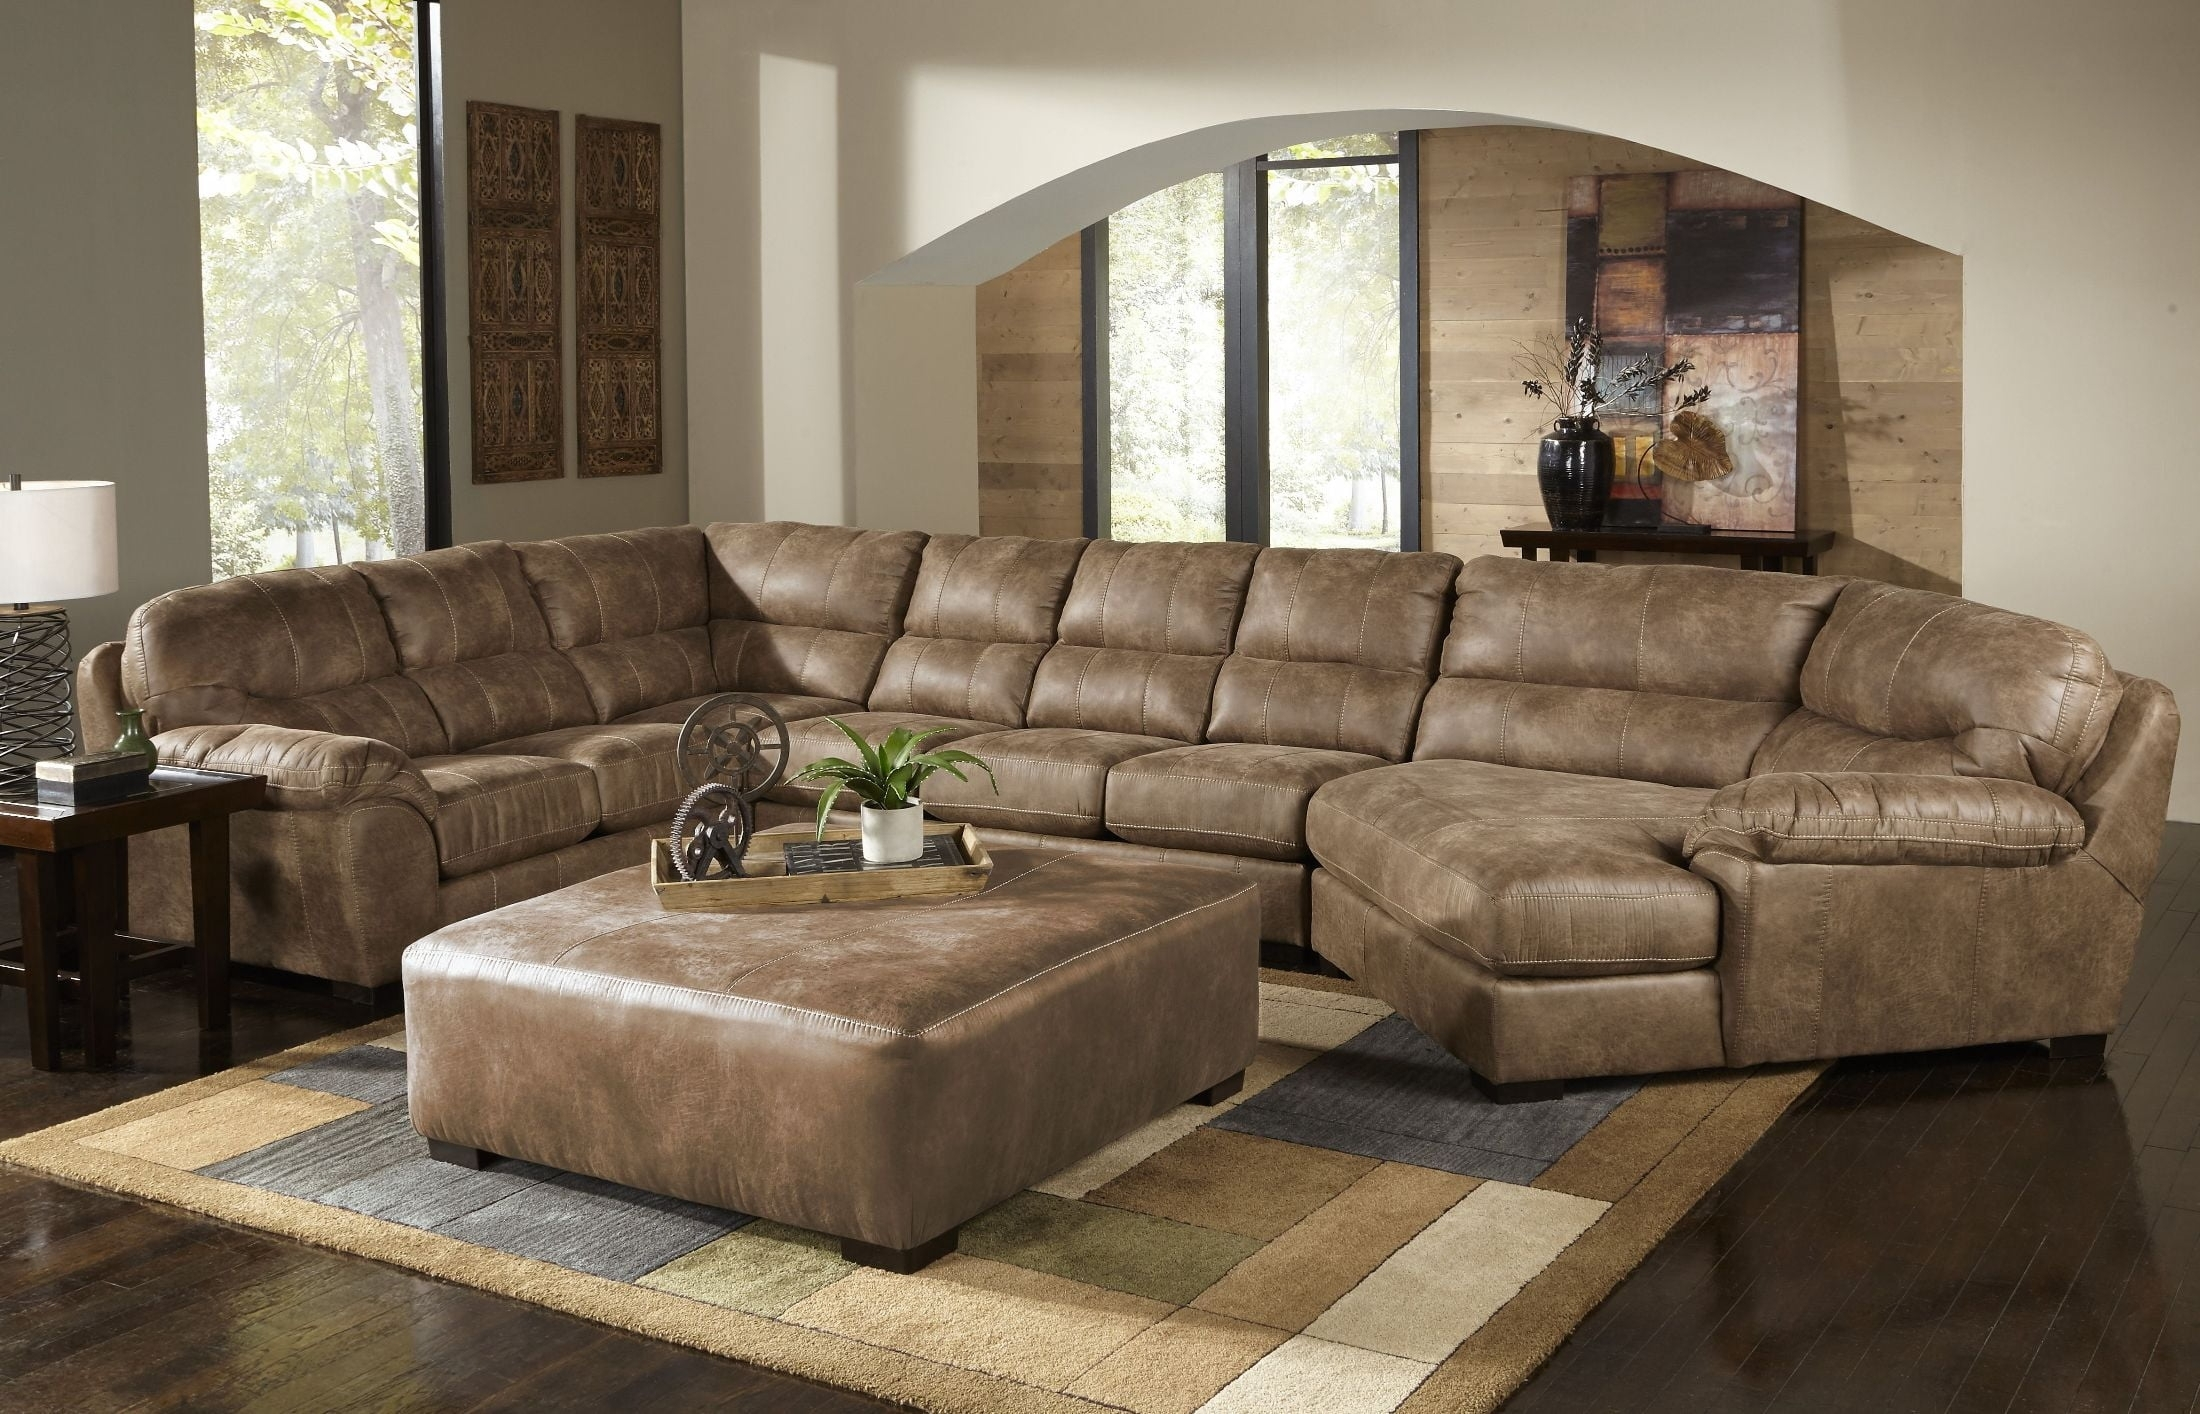 Grant Silt Laf Chaise Sectional, 4453-75-122749302749, Jackson intended for Avery 2 Piece Sectionals With Laf Armless Chaise (Image 14 of 30)